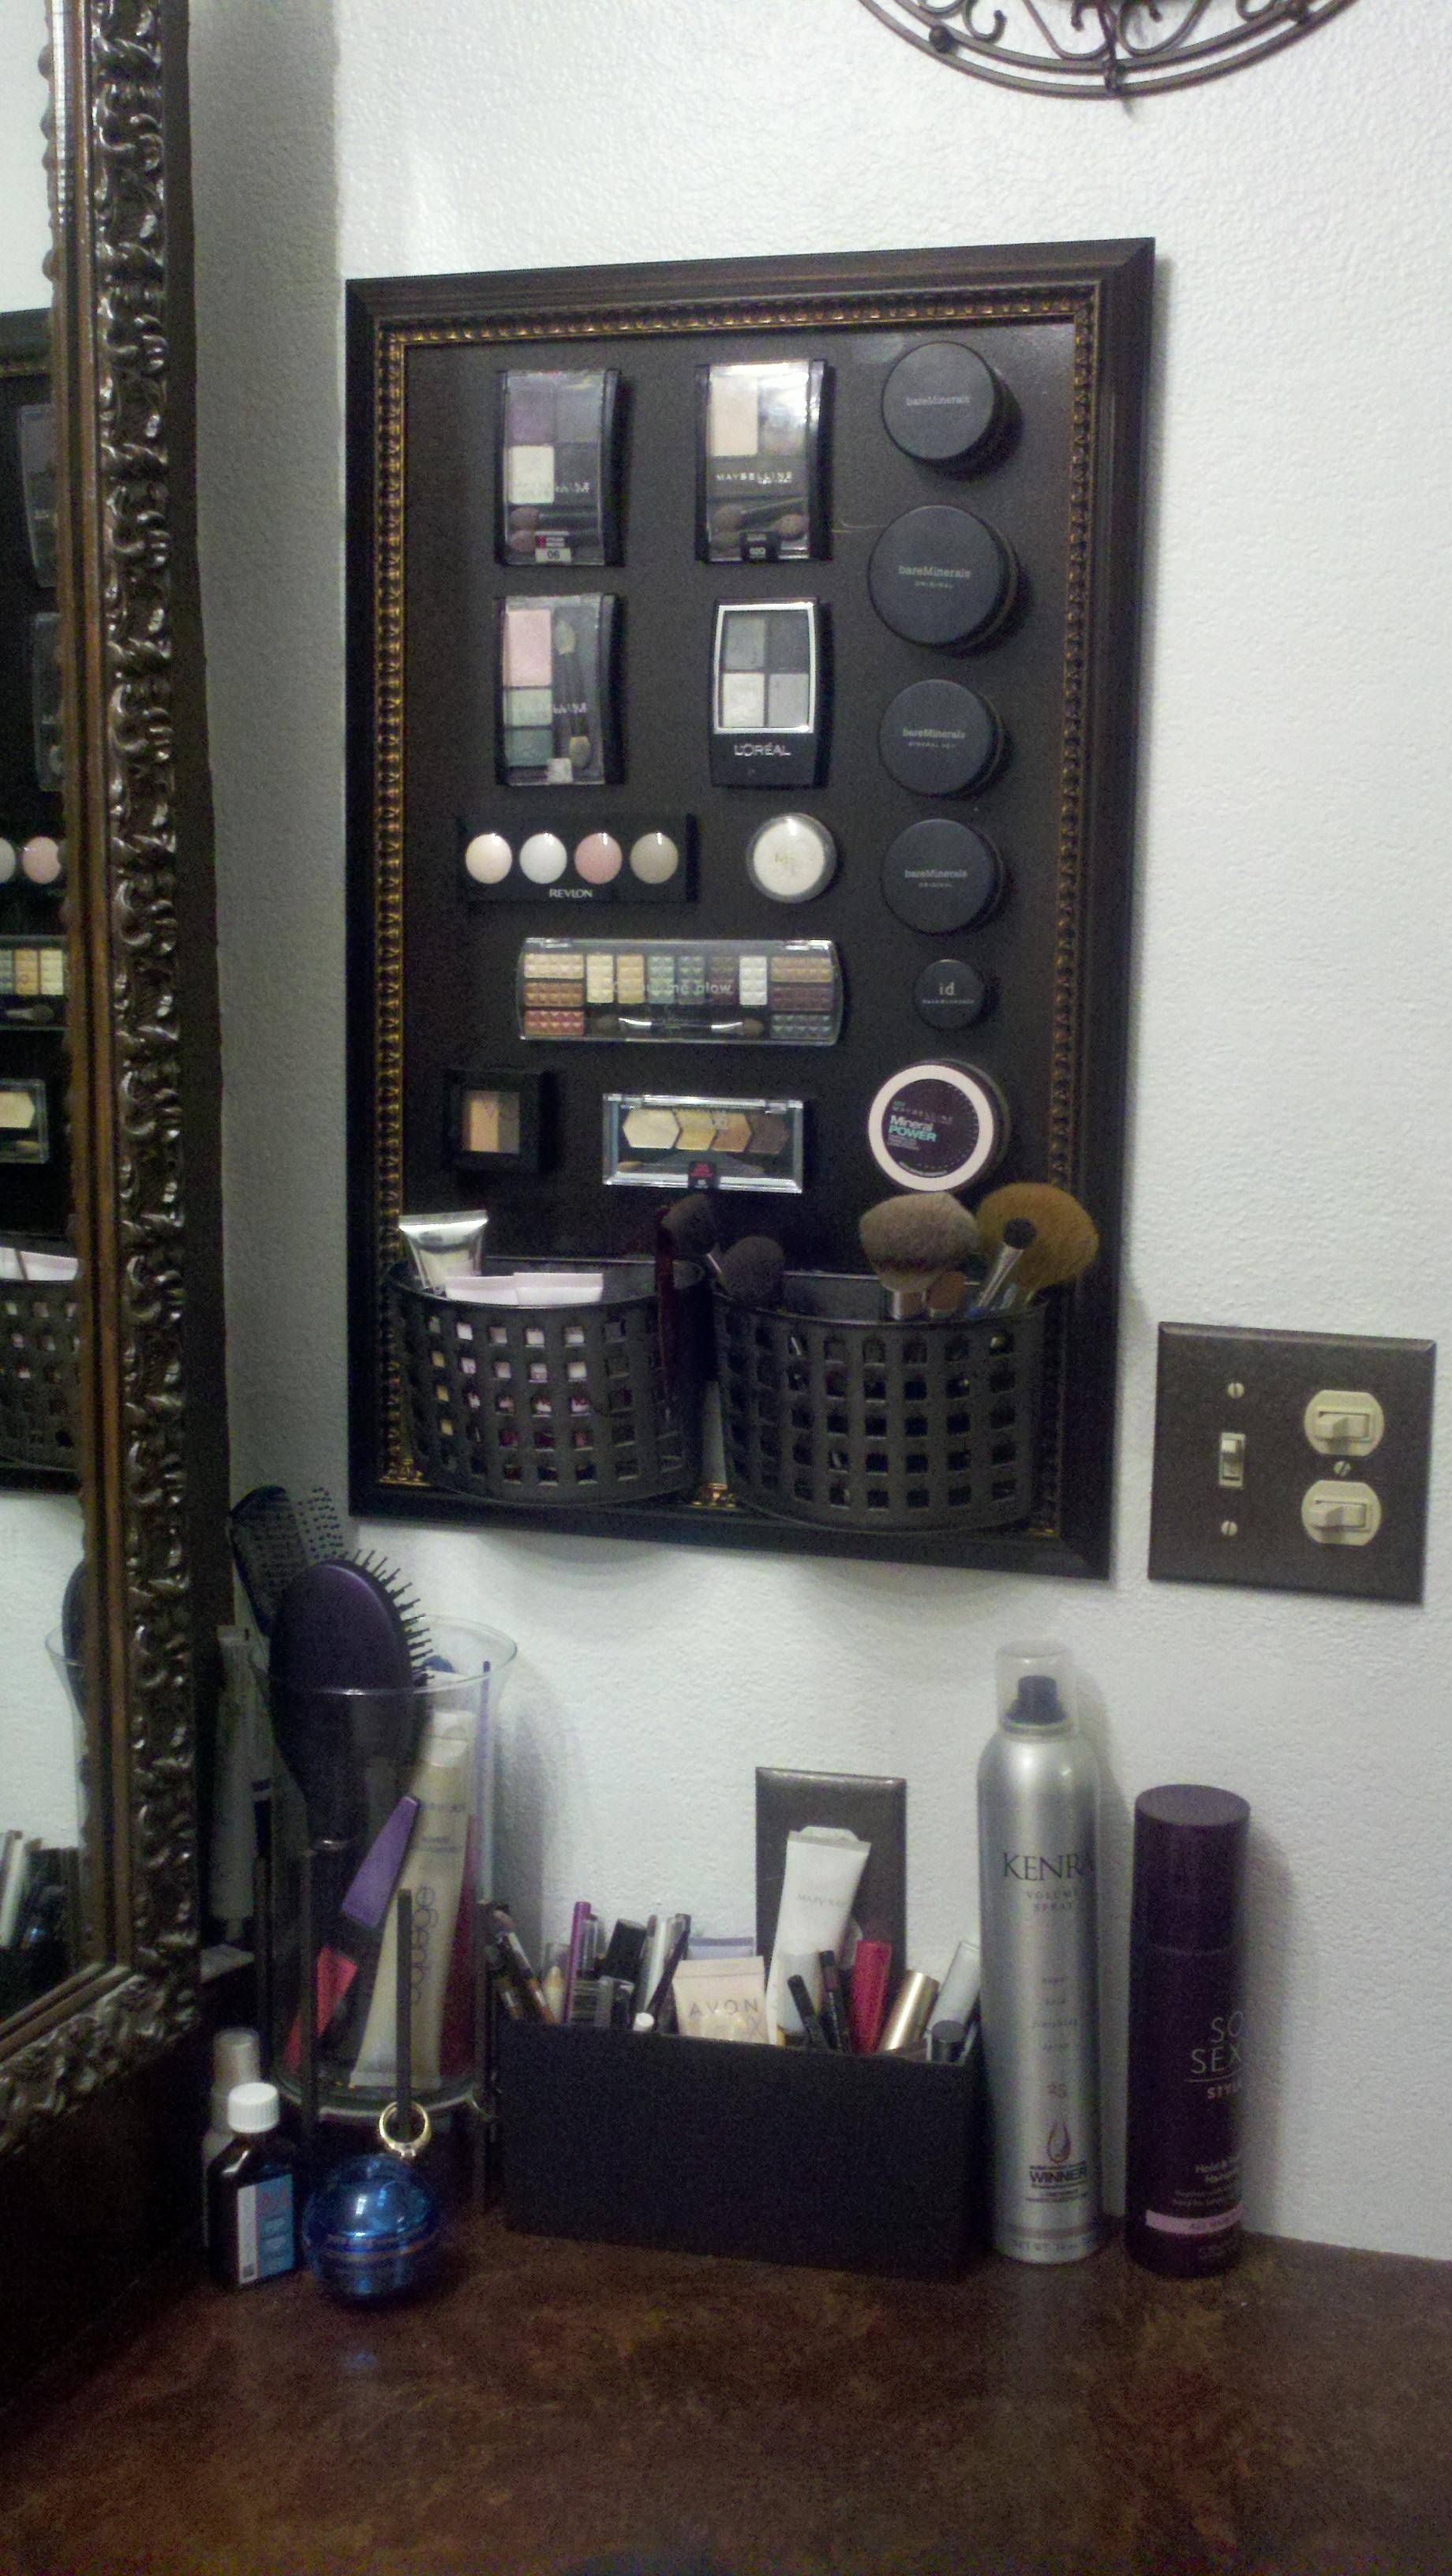 Make your own magnetic makeup board. Cheap frame from Dollar General, metal board from Ace Hardware, spray paint board n 2 plastic soap holders for brushes. Cut pieces of adhesive magnetic stripes and stick on back of makeup.